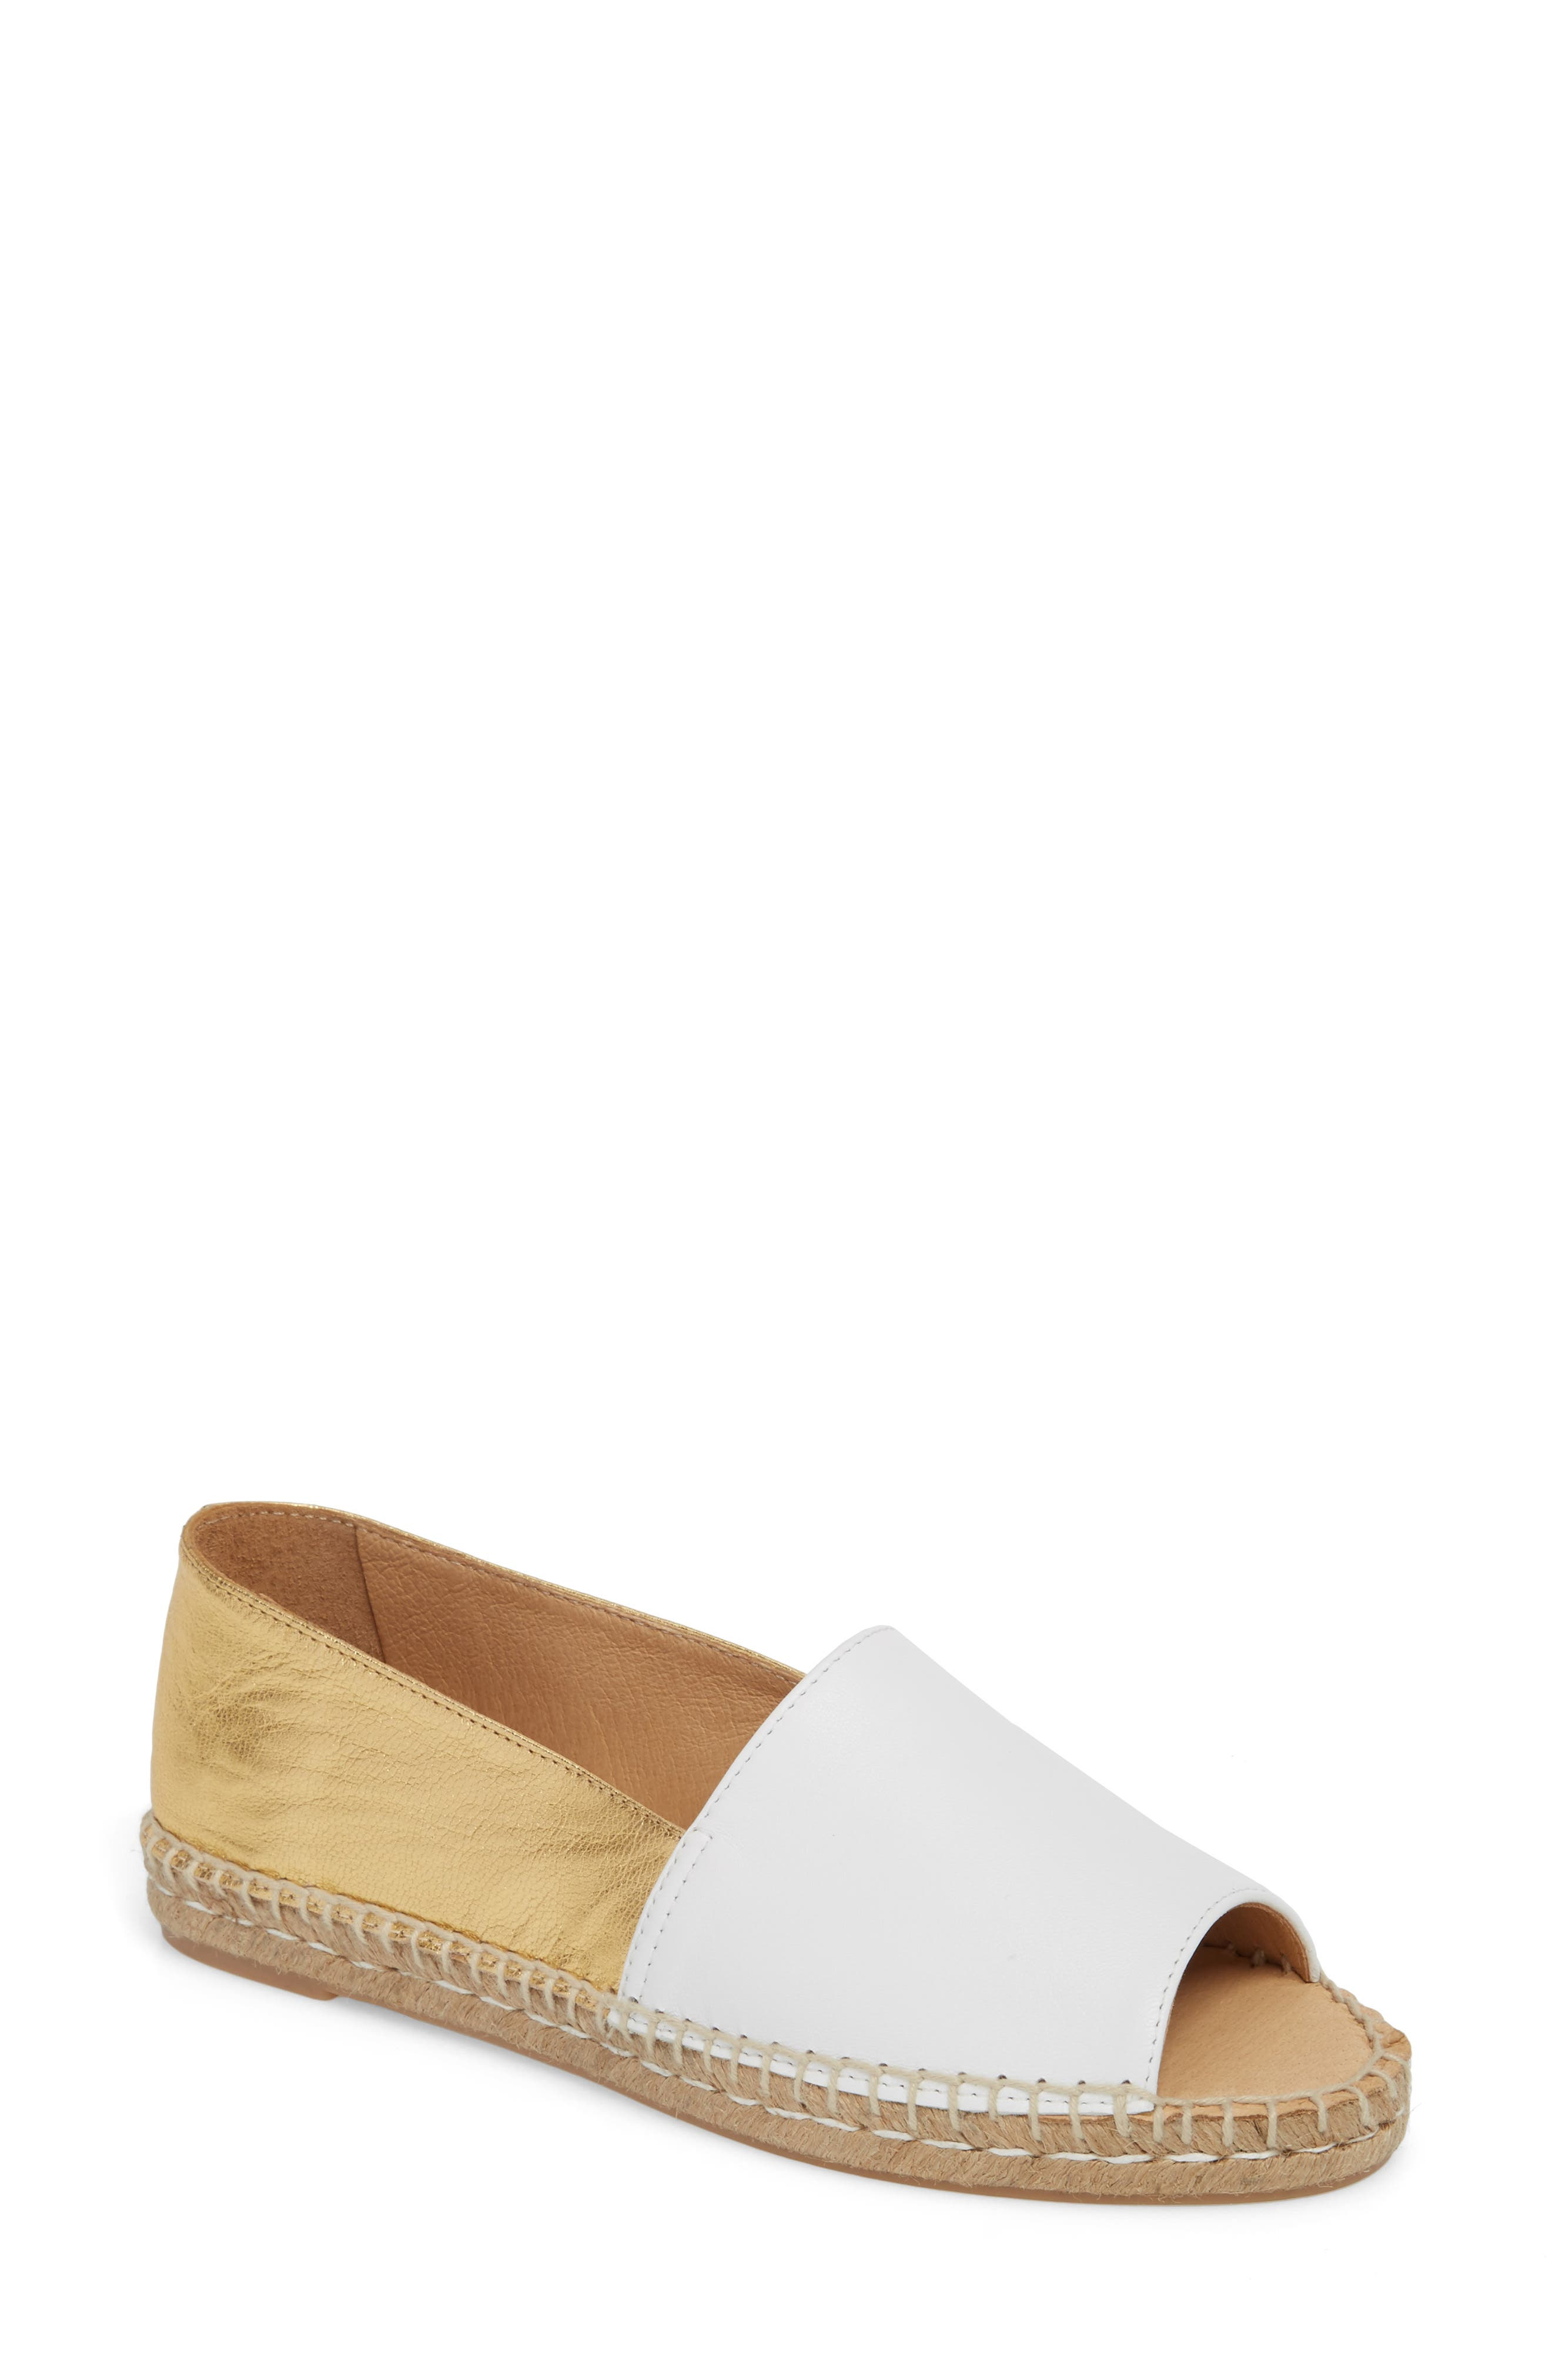 Milly Espadrille,                             Main thumbnail 1, color,                             Gold Leather